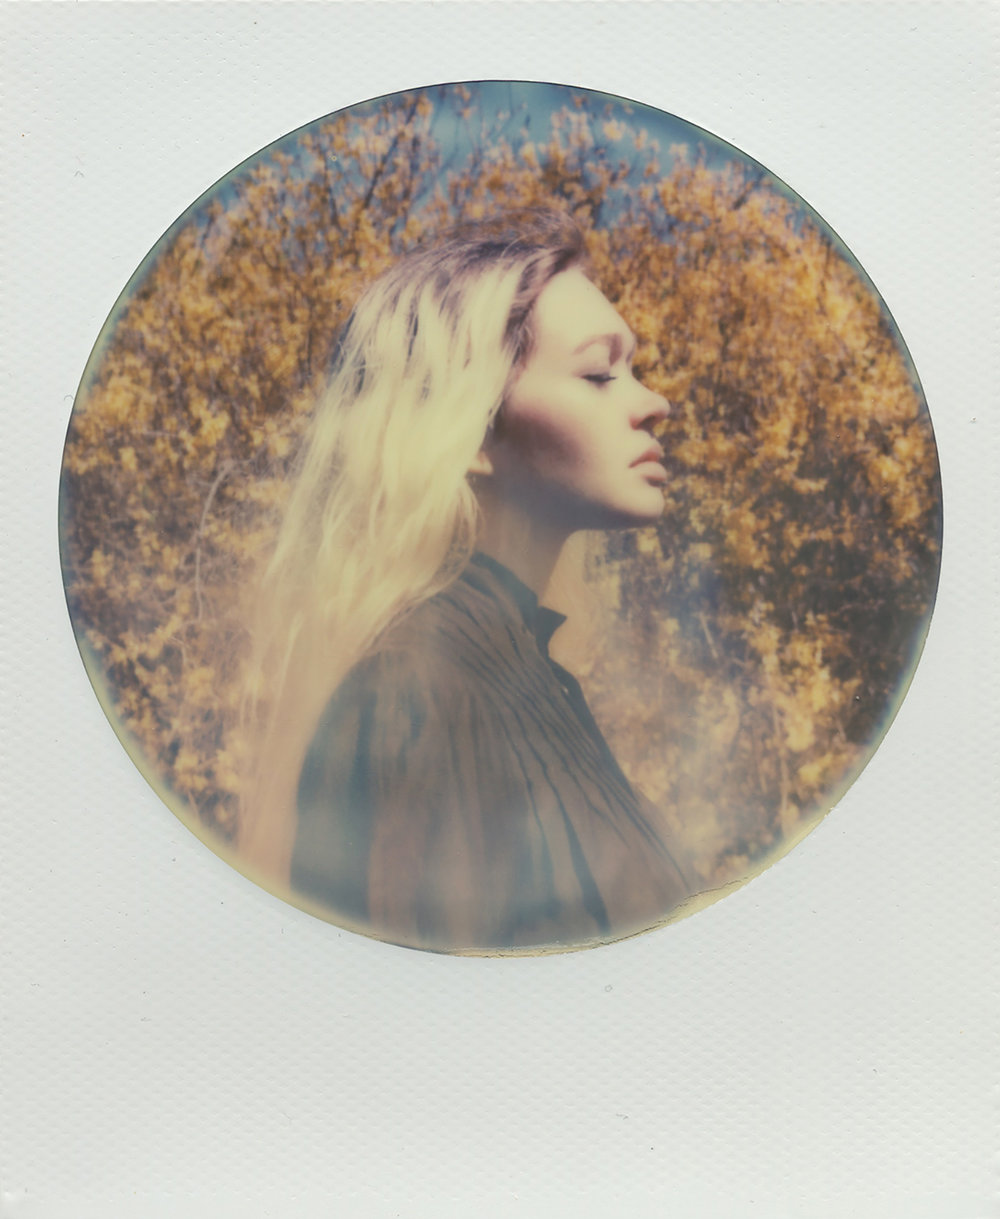 GOOD MOURNING | POLAROID SLR680 | IP 600 SPEED ROUND FRAME | NIKITA GROSS